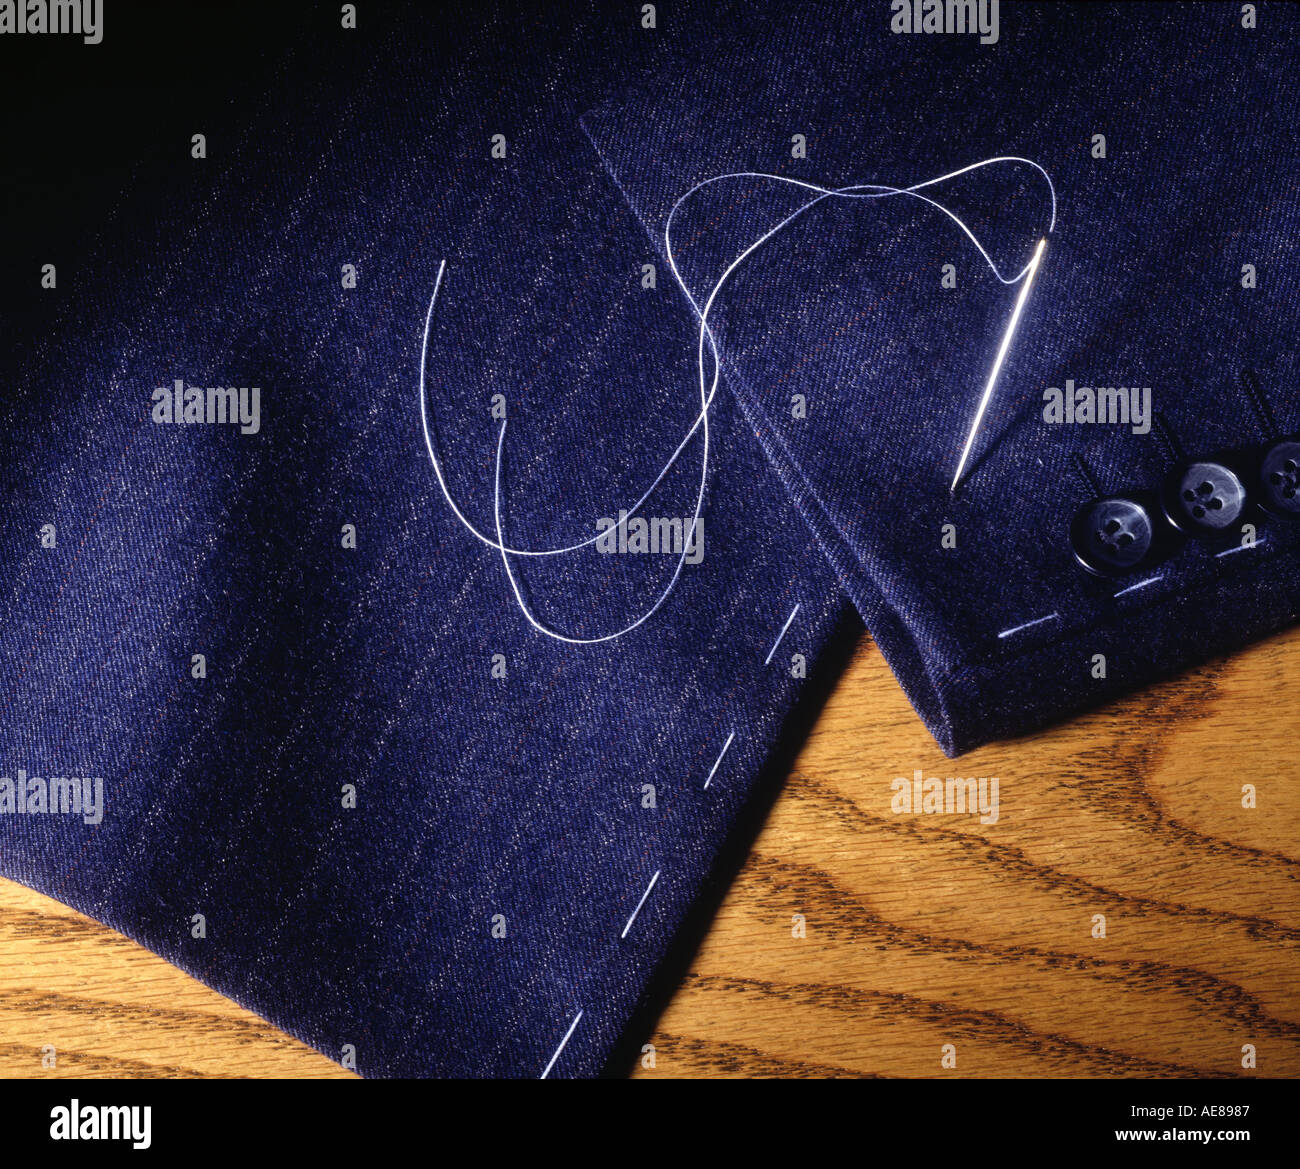 Needle Thread Sewing Repair Fabric Stitch Mending Join Material Repairs Alters Garment Suit Coat Sew Taylor Close-up - Stock Image